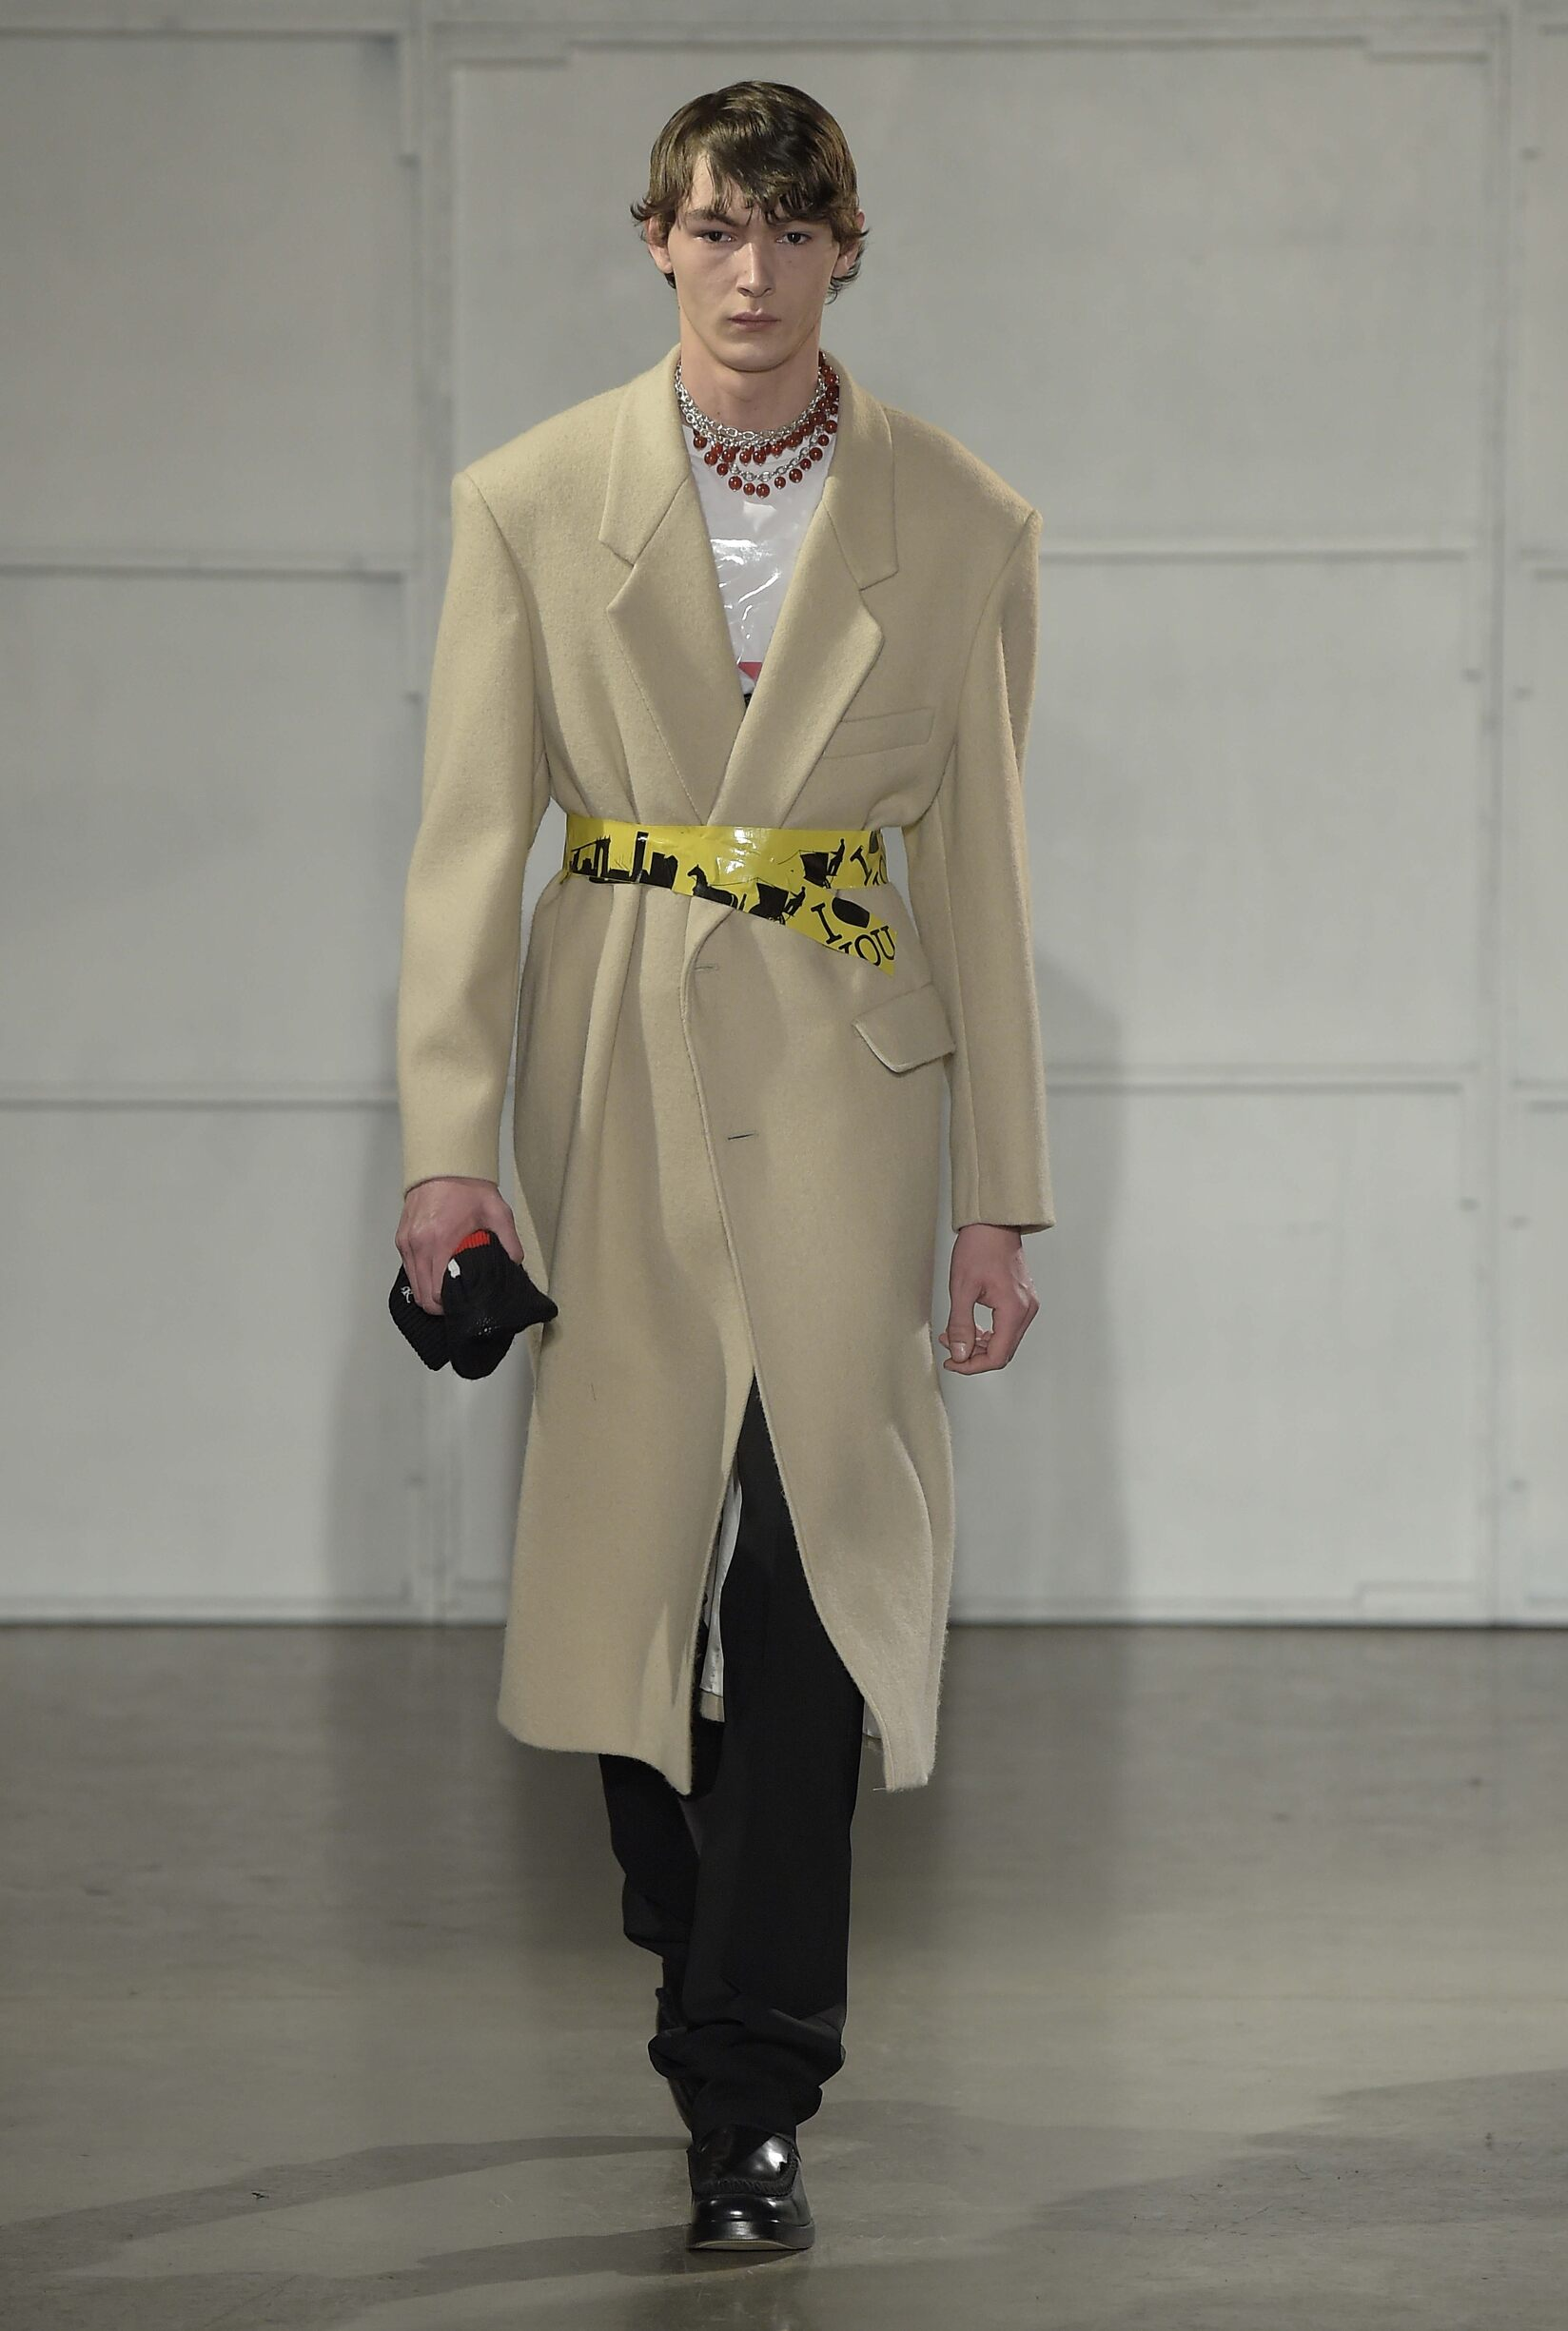 FW 2017-18 Raf Simons Fashion Show